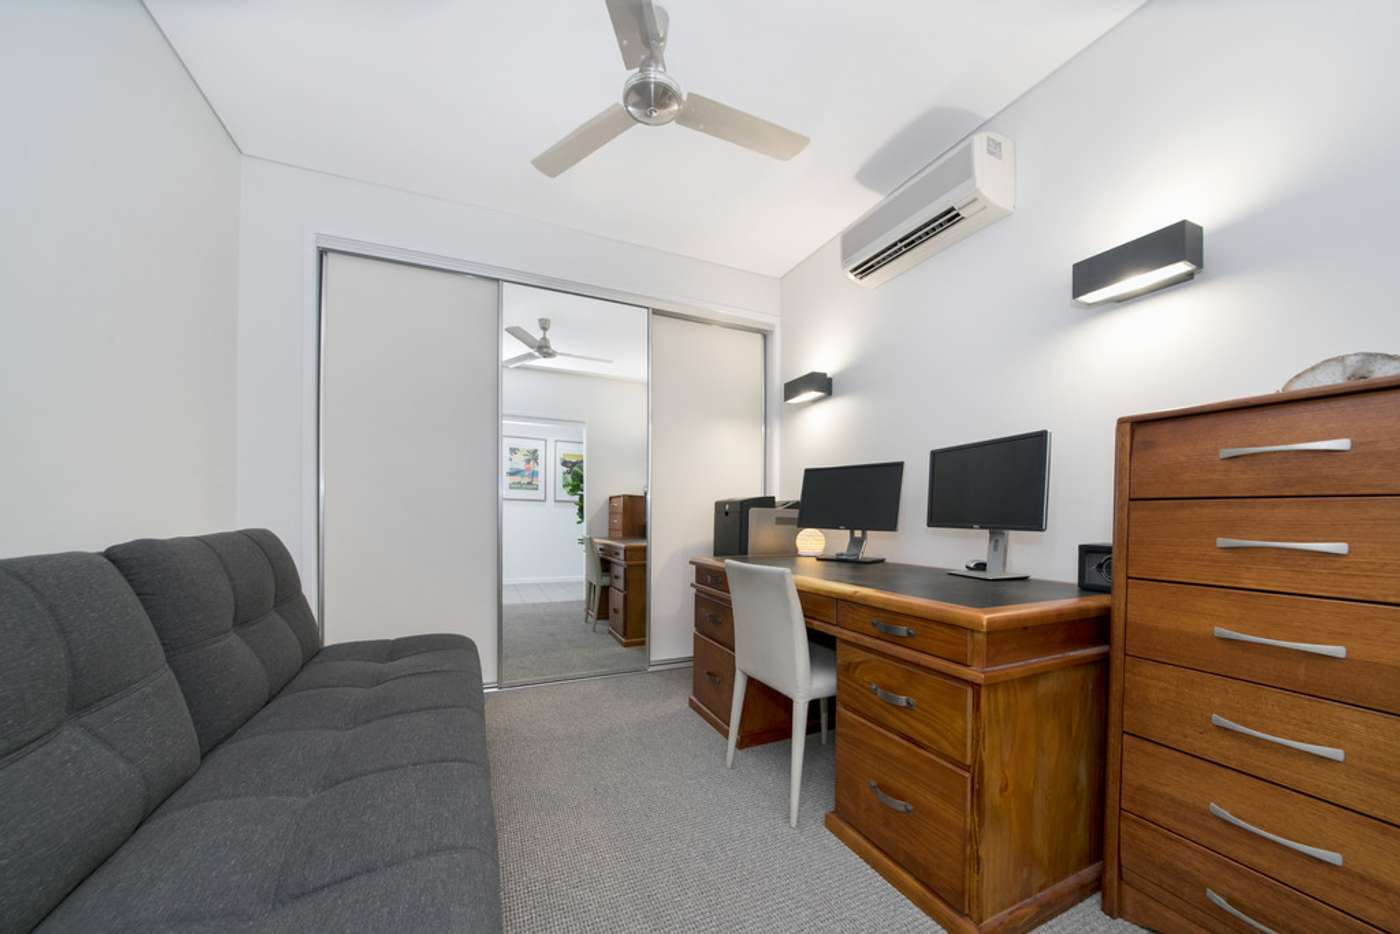 Fifth view of Homely apartment listing, 23/96-98 Mitchell Street, North Ward QLD 4810